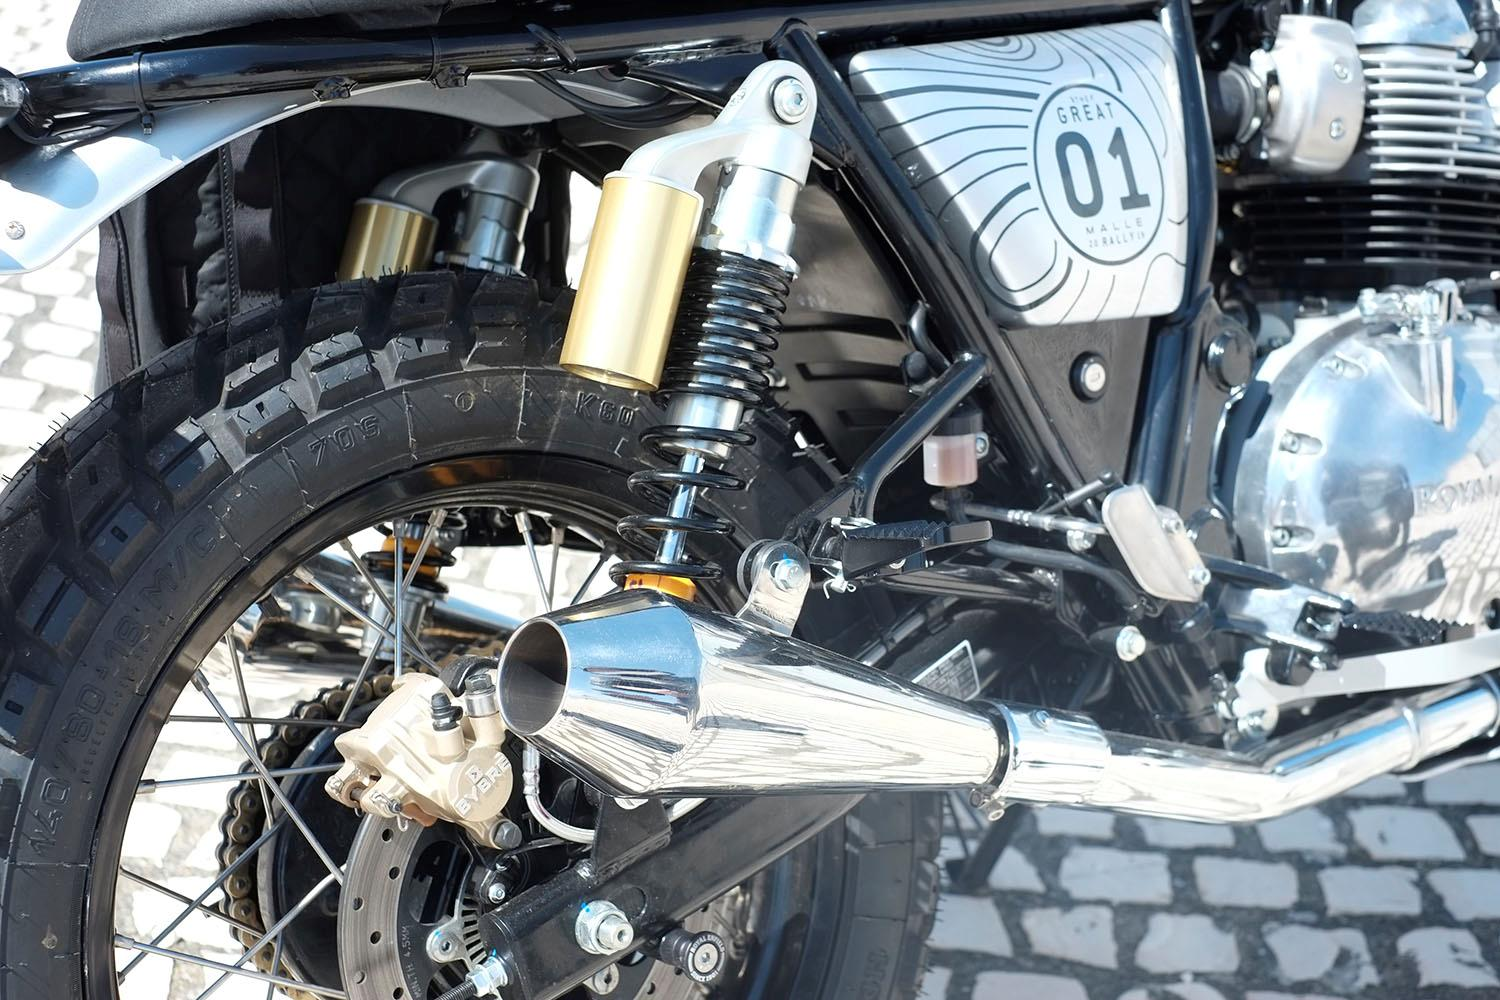 Royal Enfield Adventure exhaust